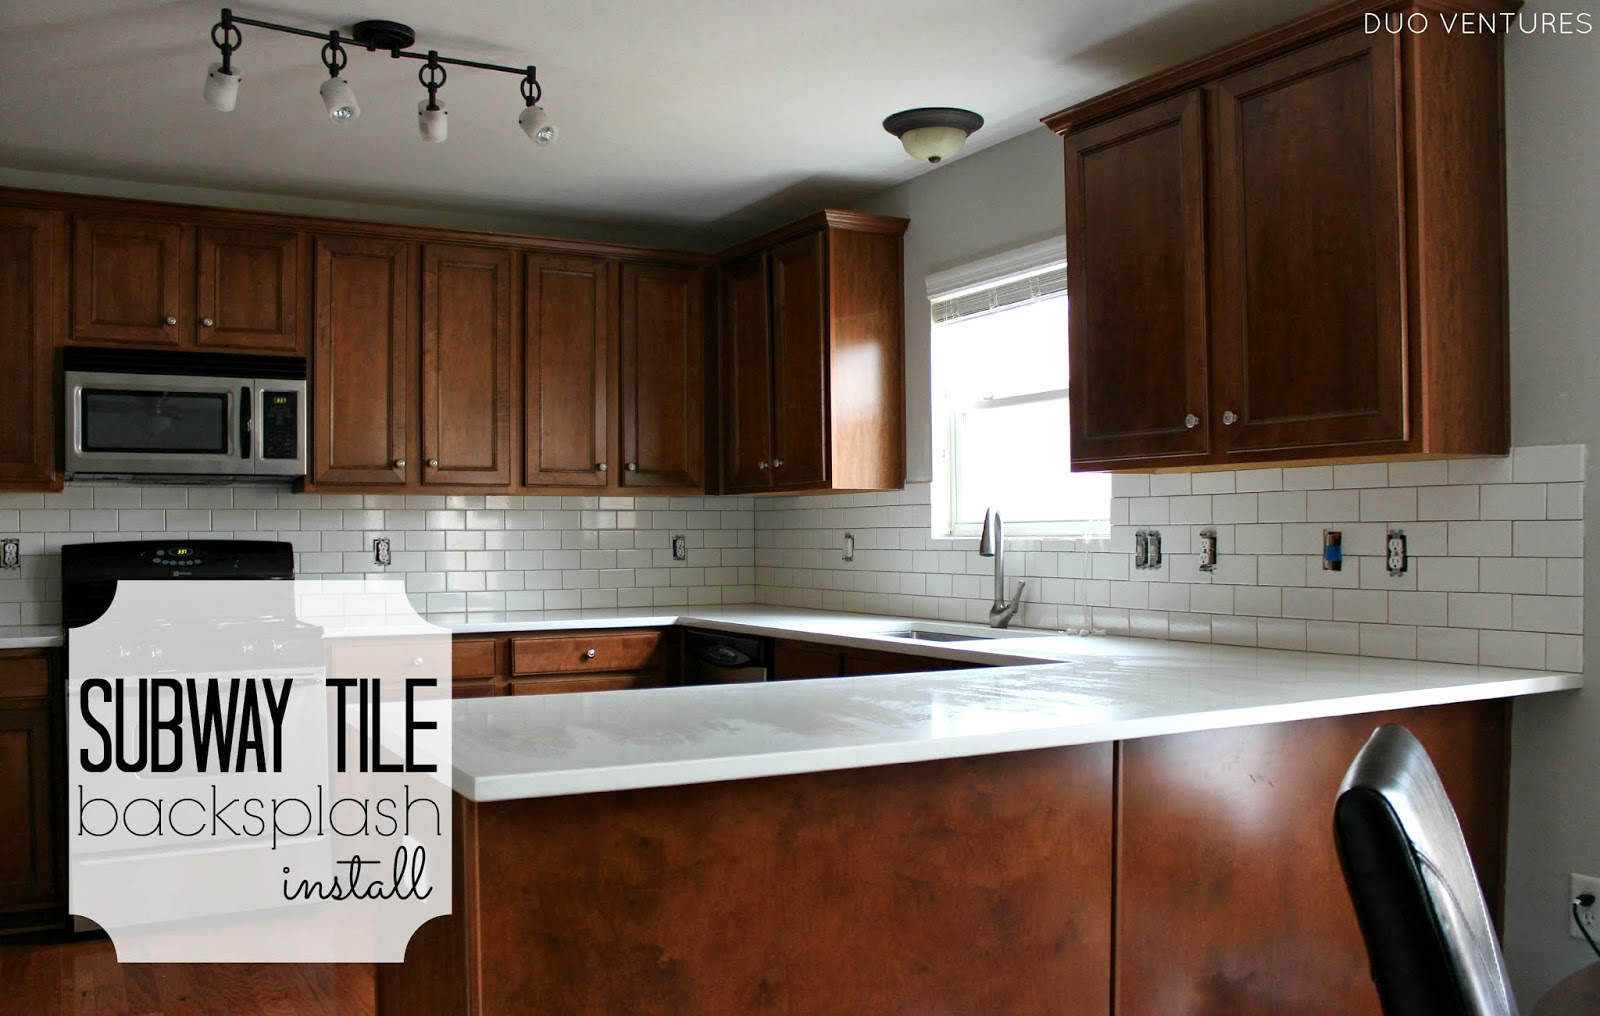 - Duo Ventures: Kitchen Makeover: Subway Tile Backsplash Installation